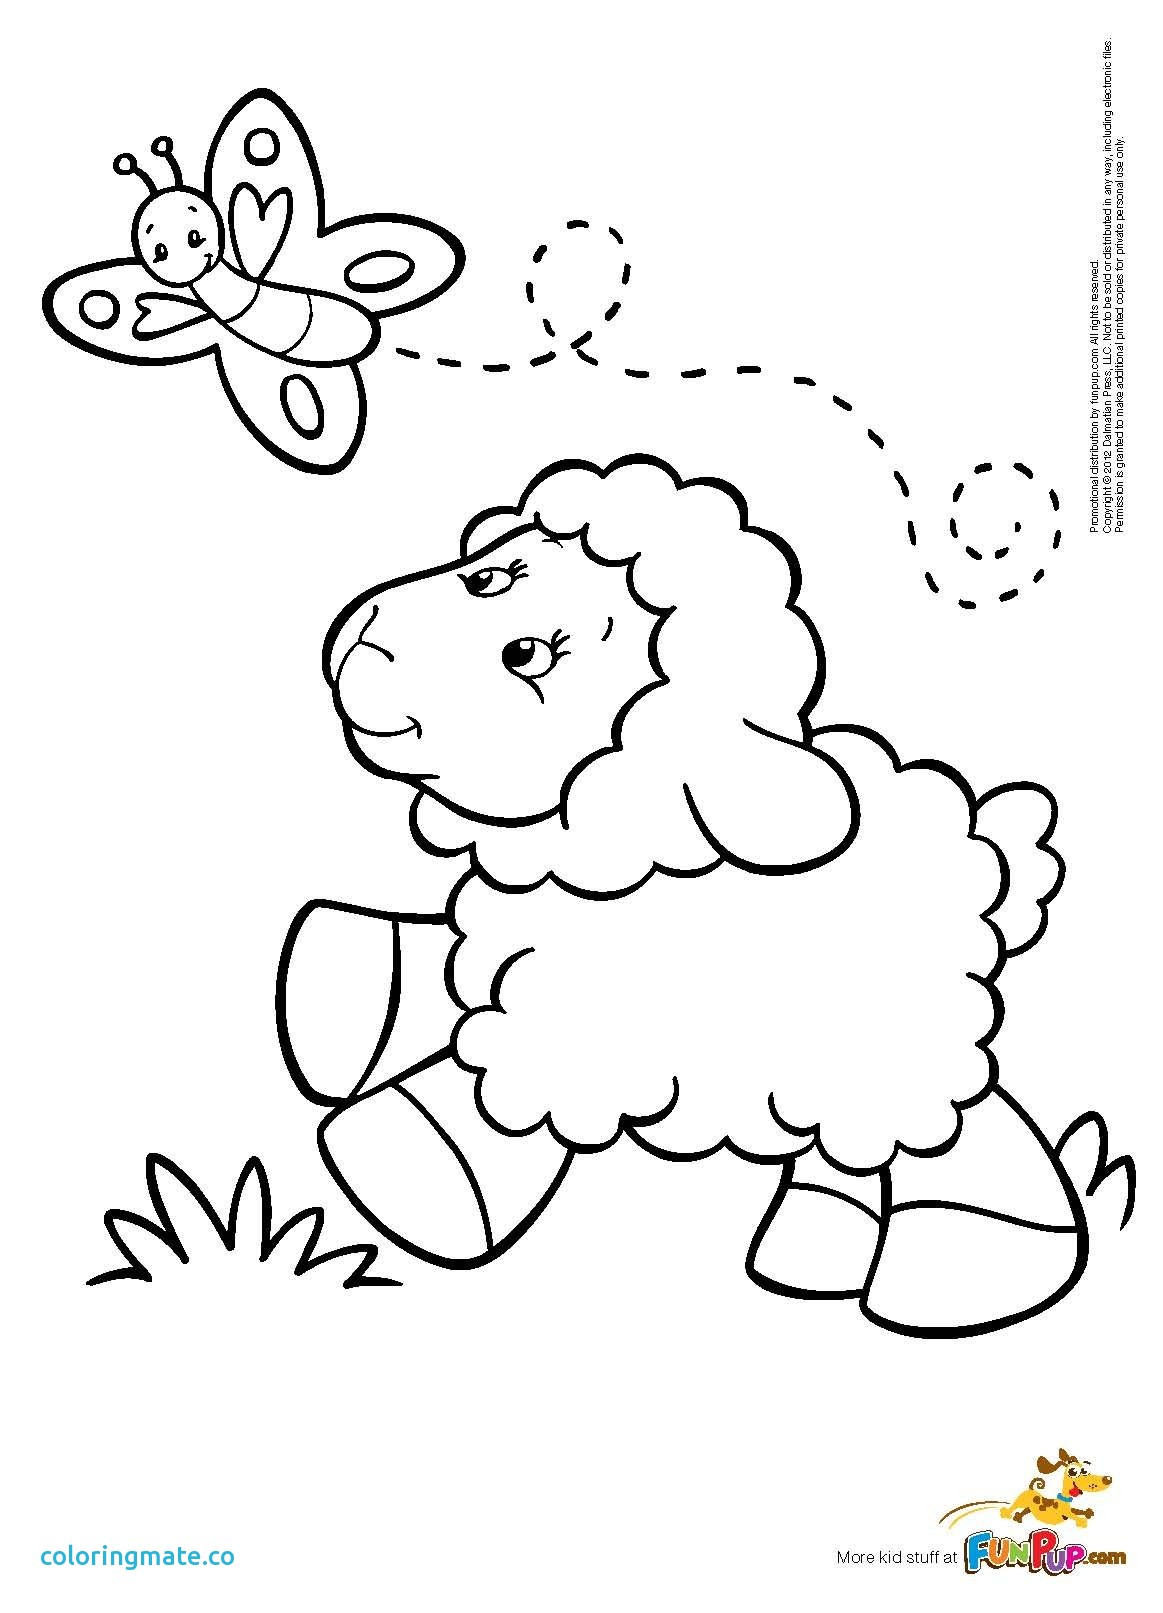 1163x1613 Lamb Coloring Page Awesome Baby Lamb Coloring Pages Coloring Pages